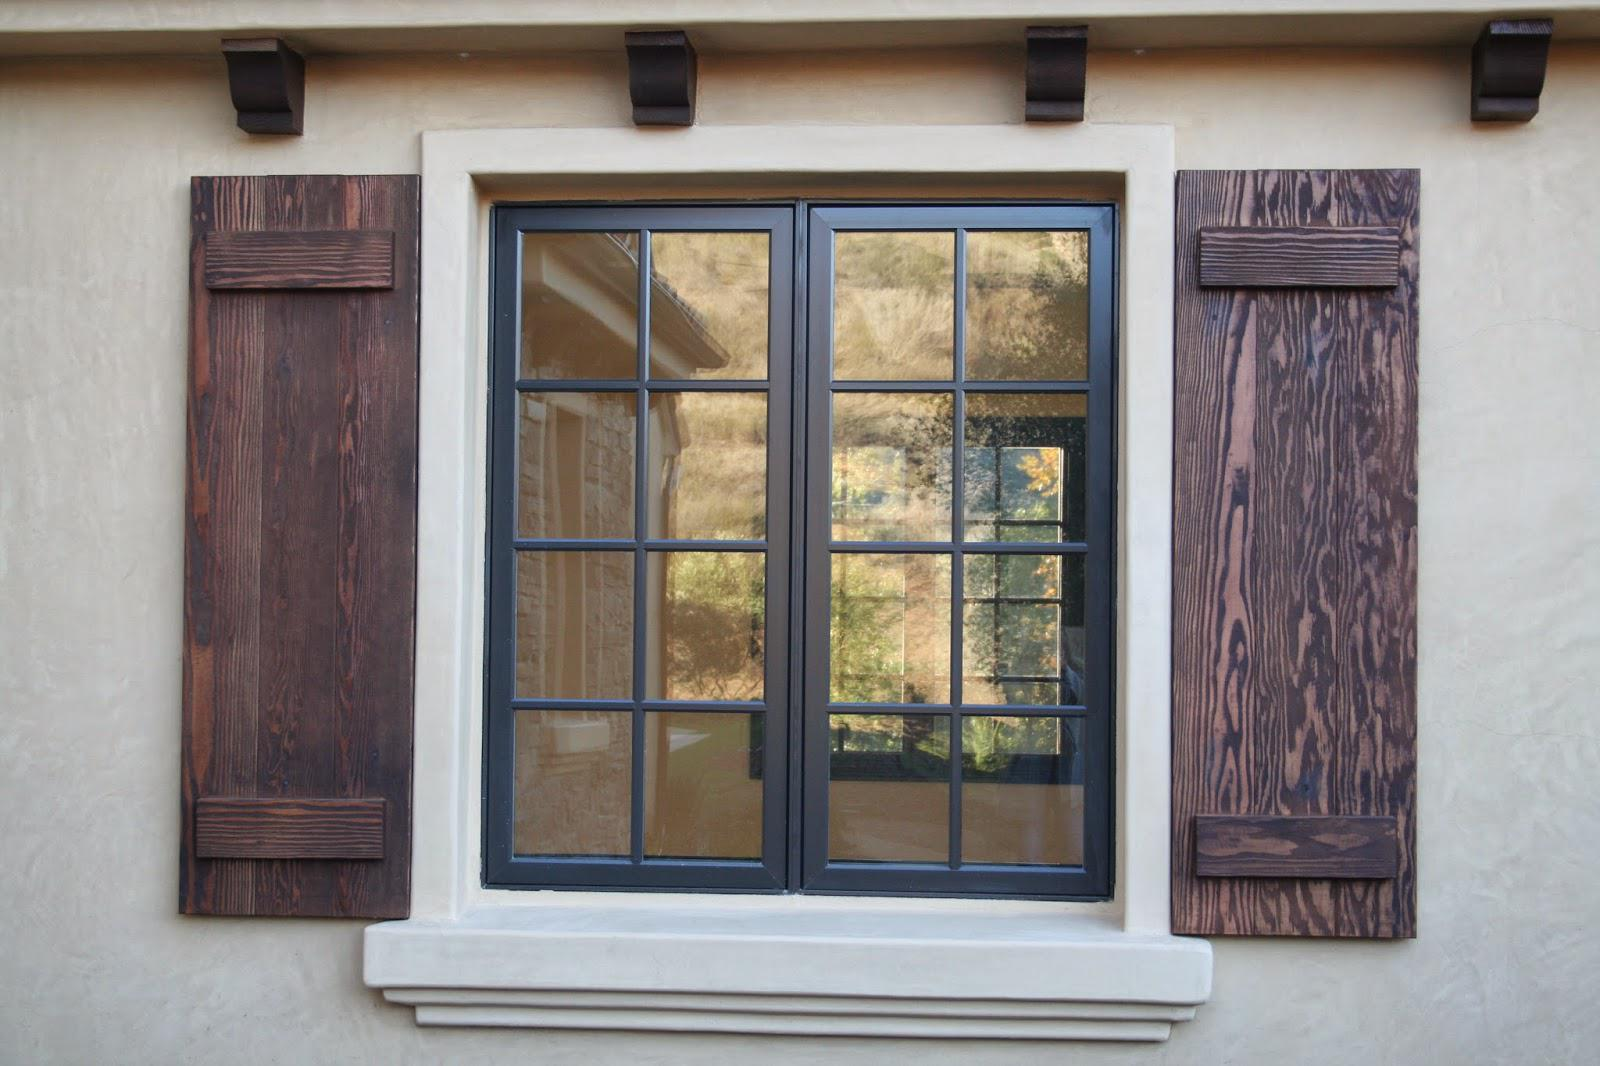 Wood vs mdf window stutters which one should you choose - Exterior wooden shutters for windows ...